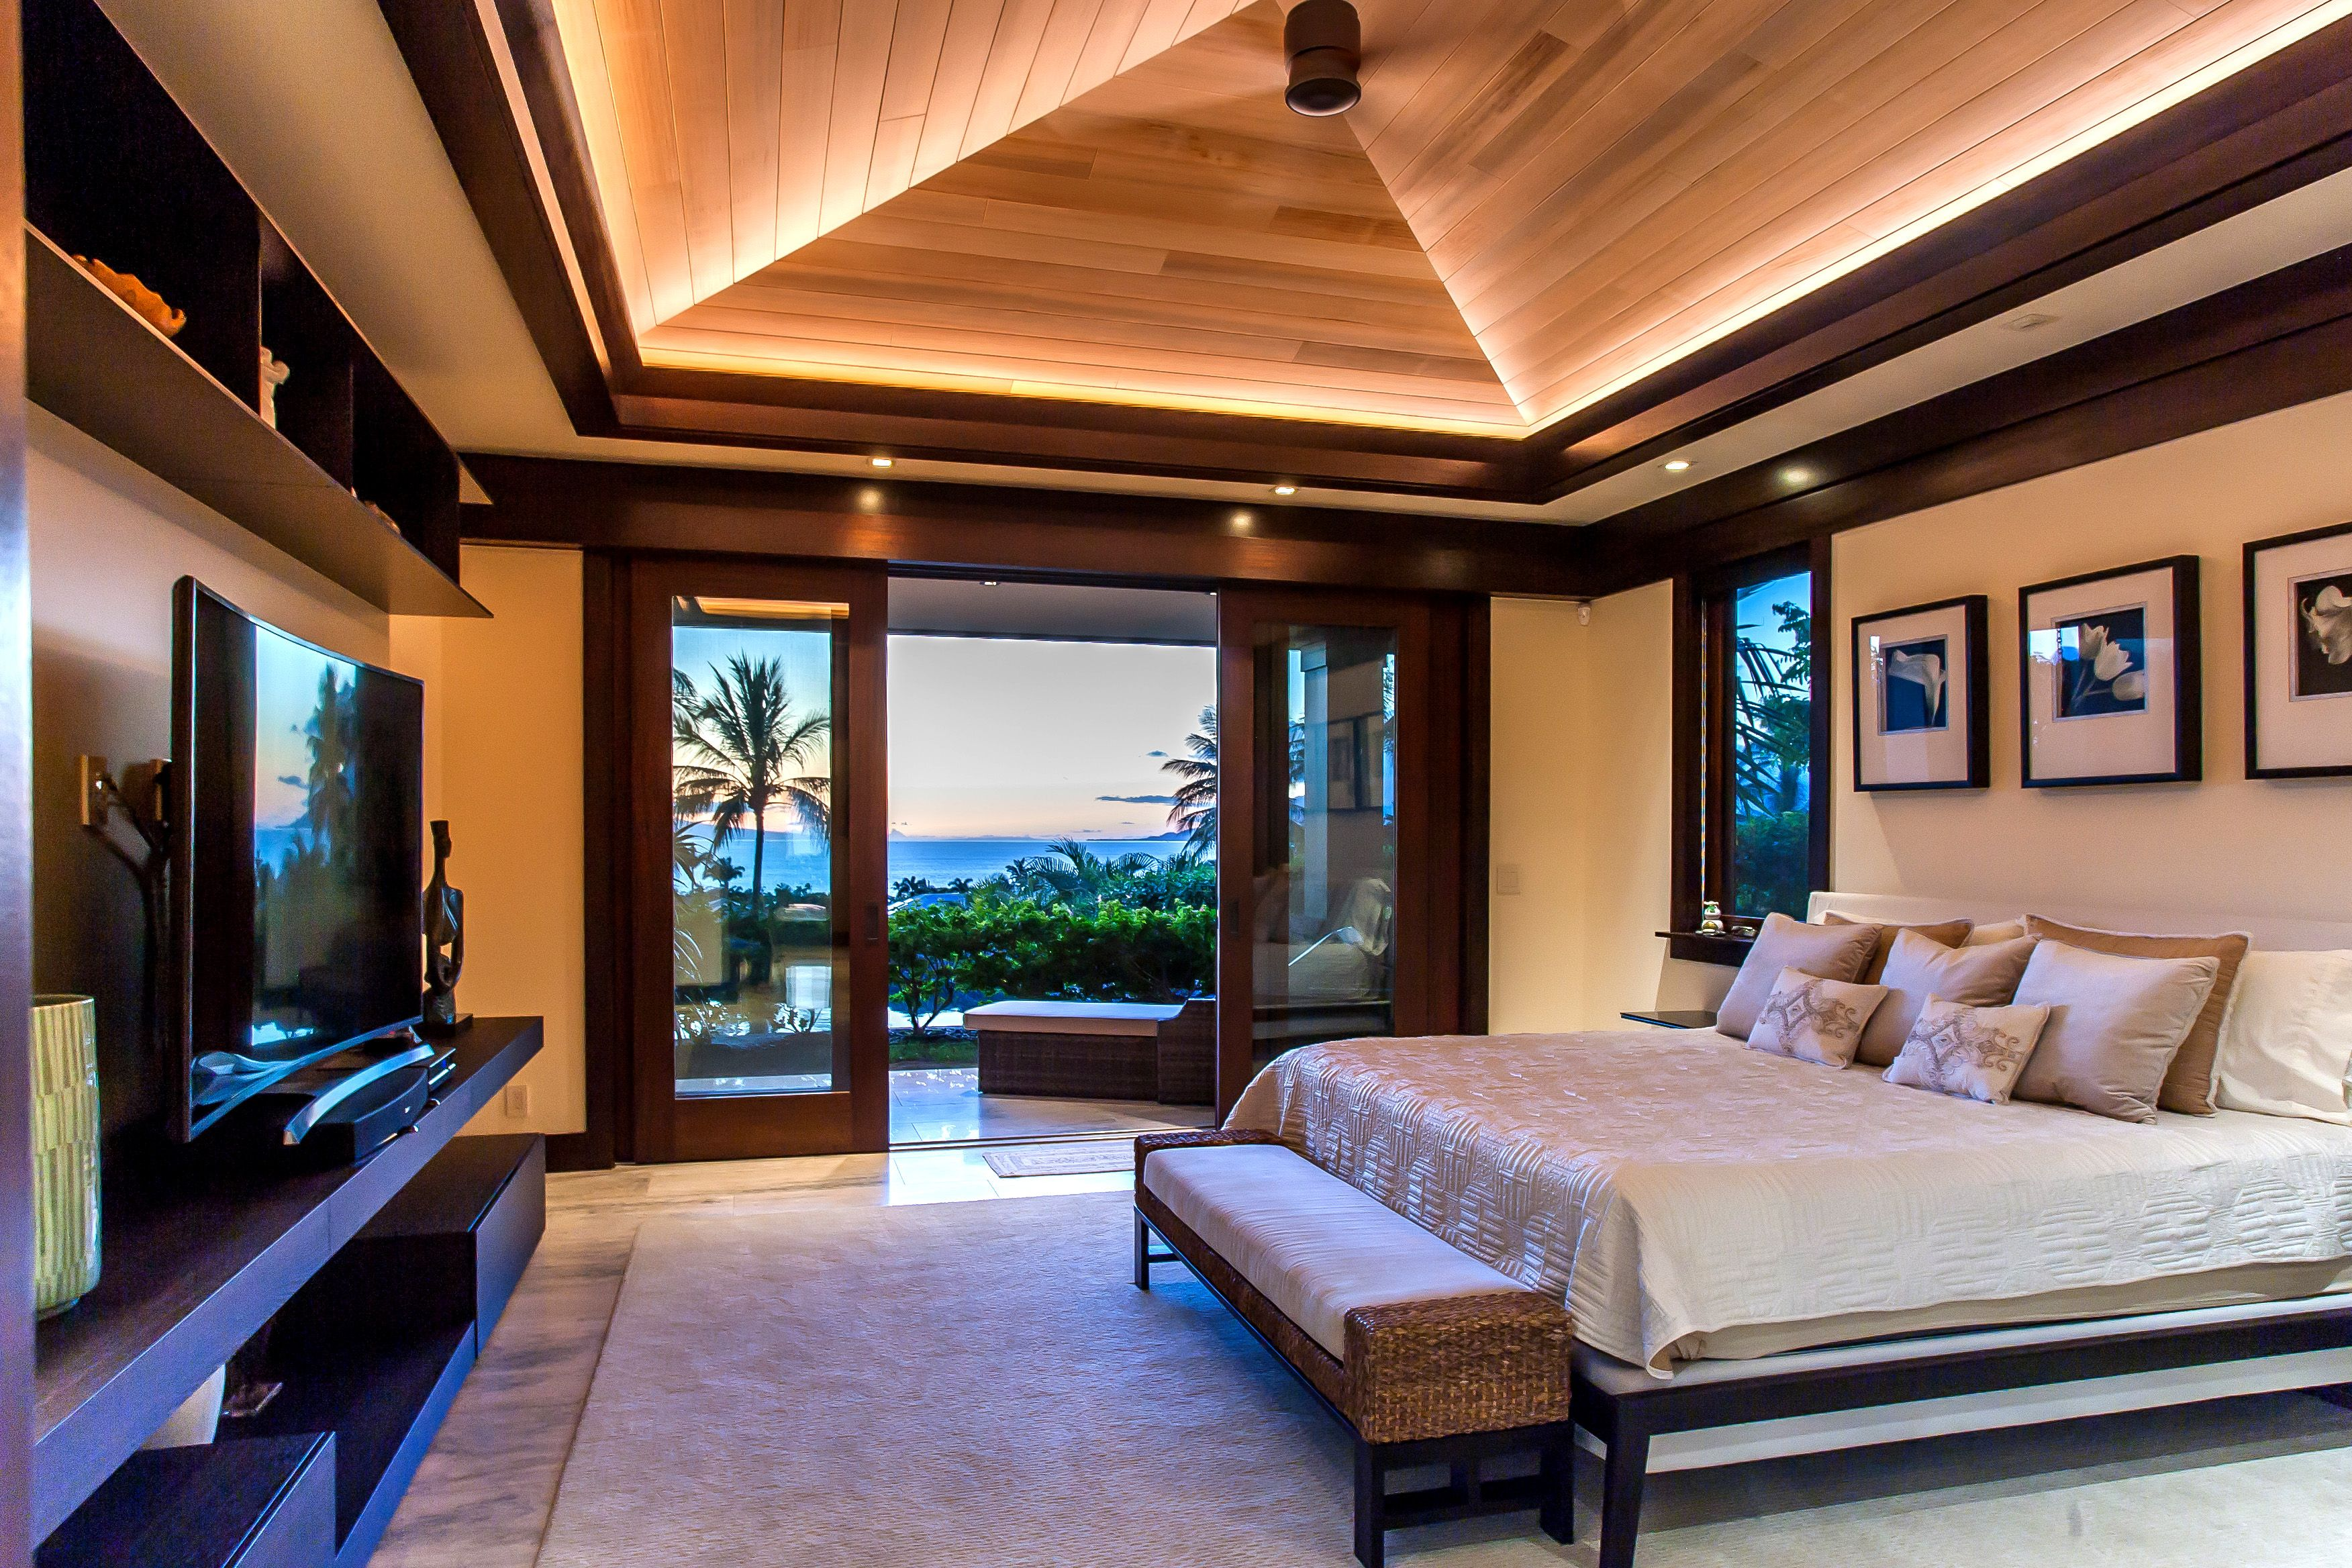 Master Bedroom Vaulted Wood Ceiling Wood Ceilings House Dream House